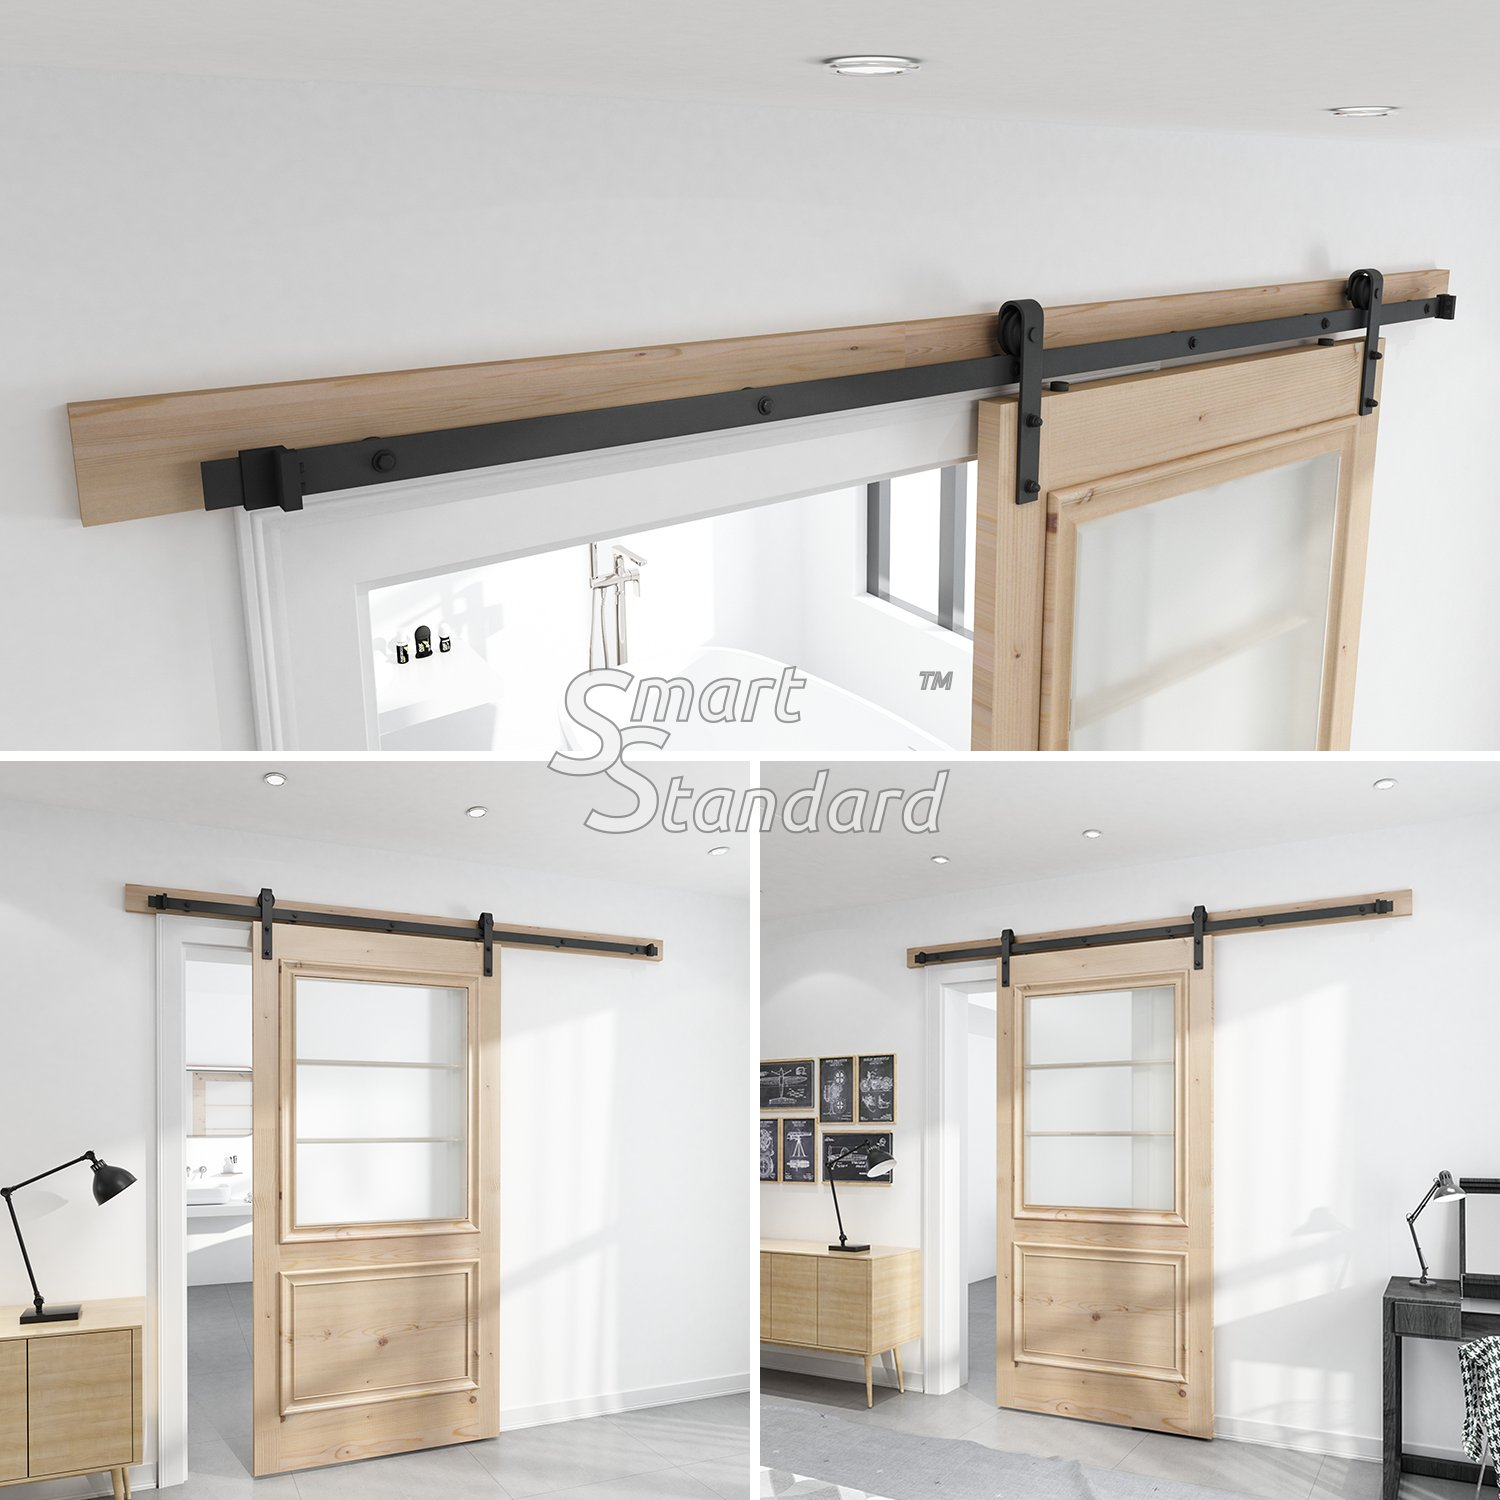 SMARTSTANDARD SDH-0080-STANDARD-BK Heavy Duty Sturdy Sliding Barn Door Hardware Kit, 8' SingleRail,Super Smoothly and Quietly, Simple and Easy to Install, Fit 42-48'' Wide DoorPanel by SMARTSTANDARD (Image #1)